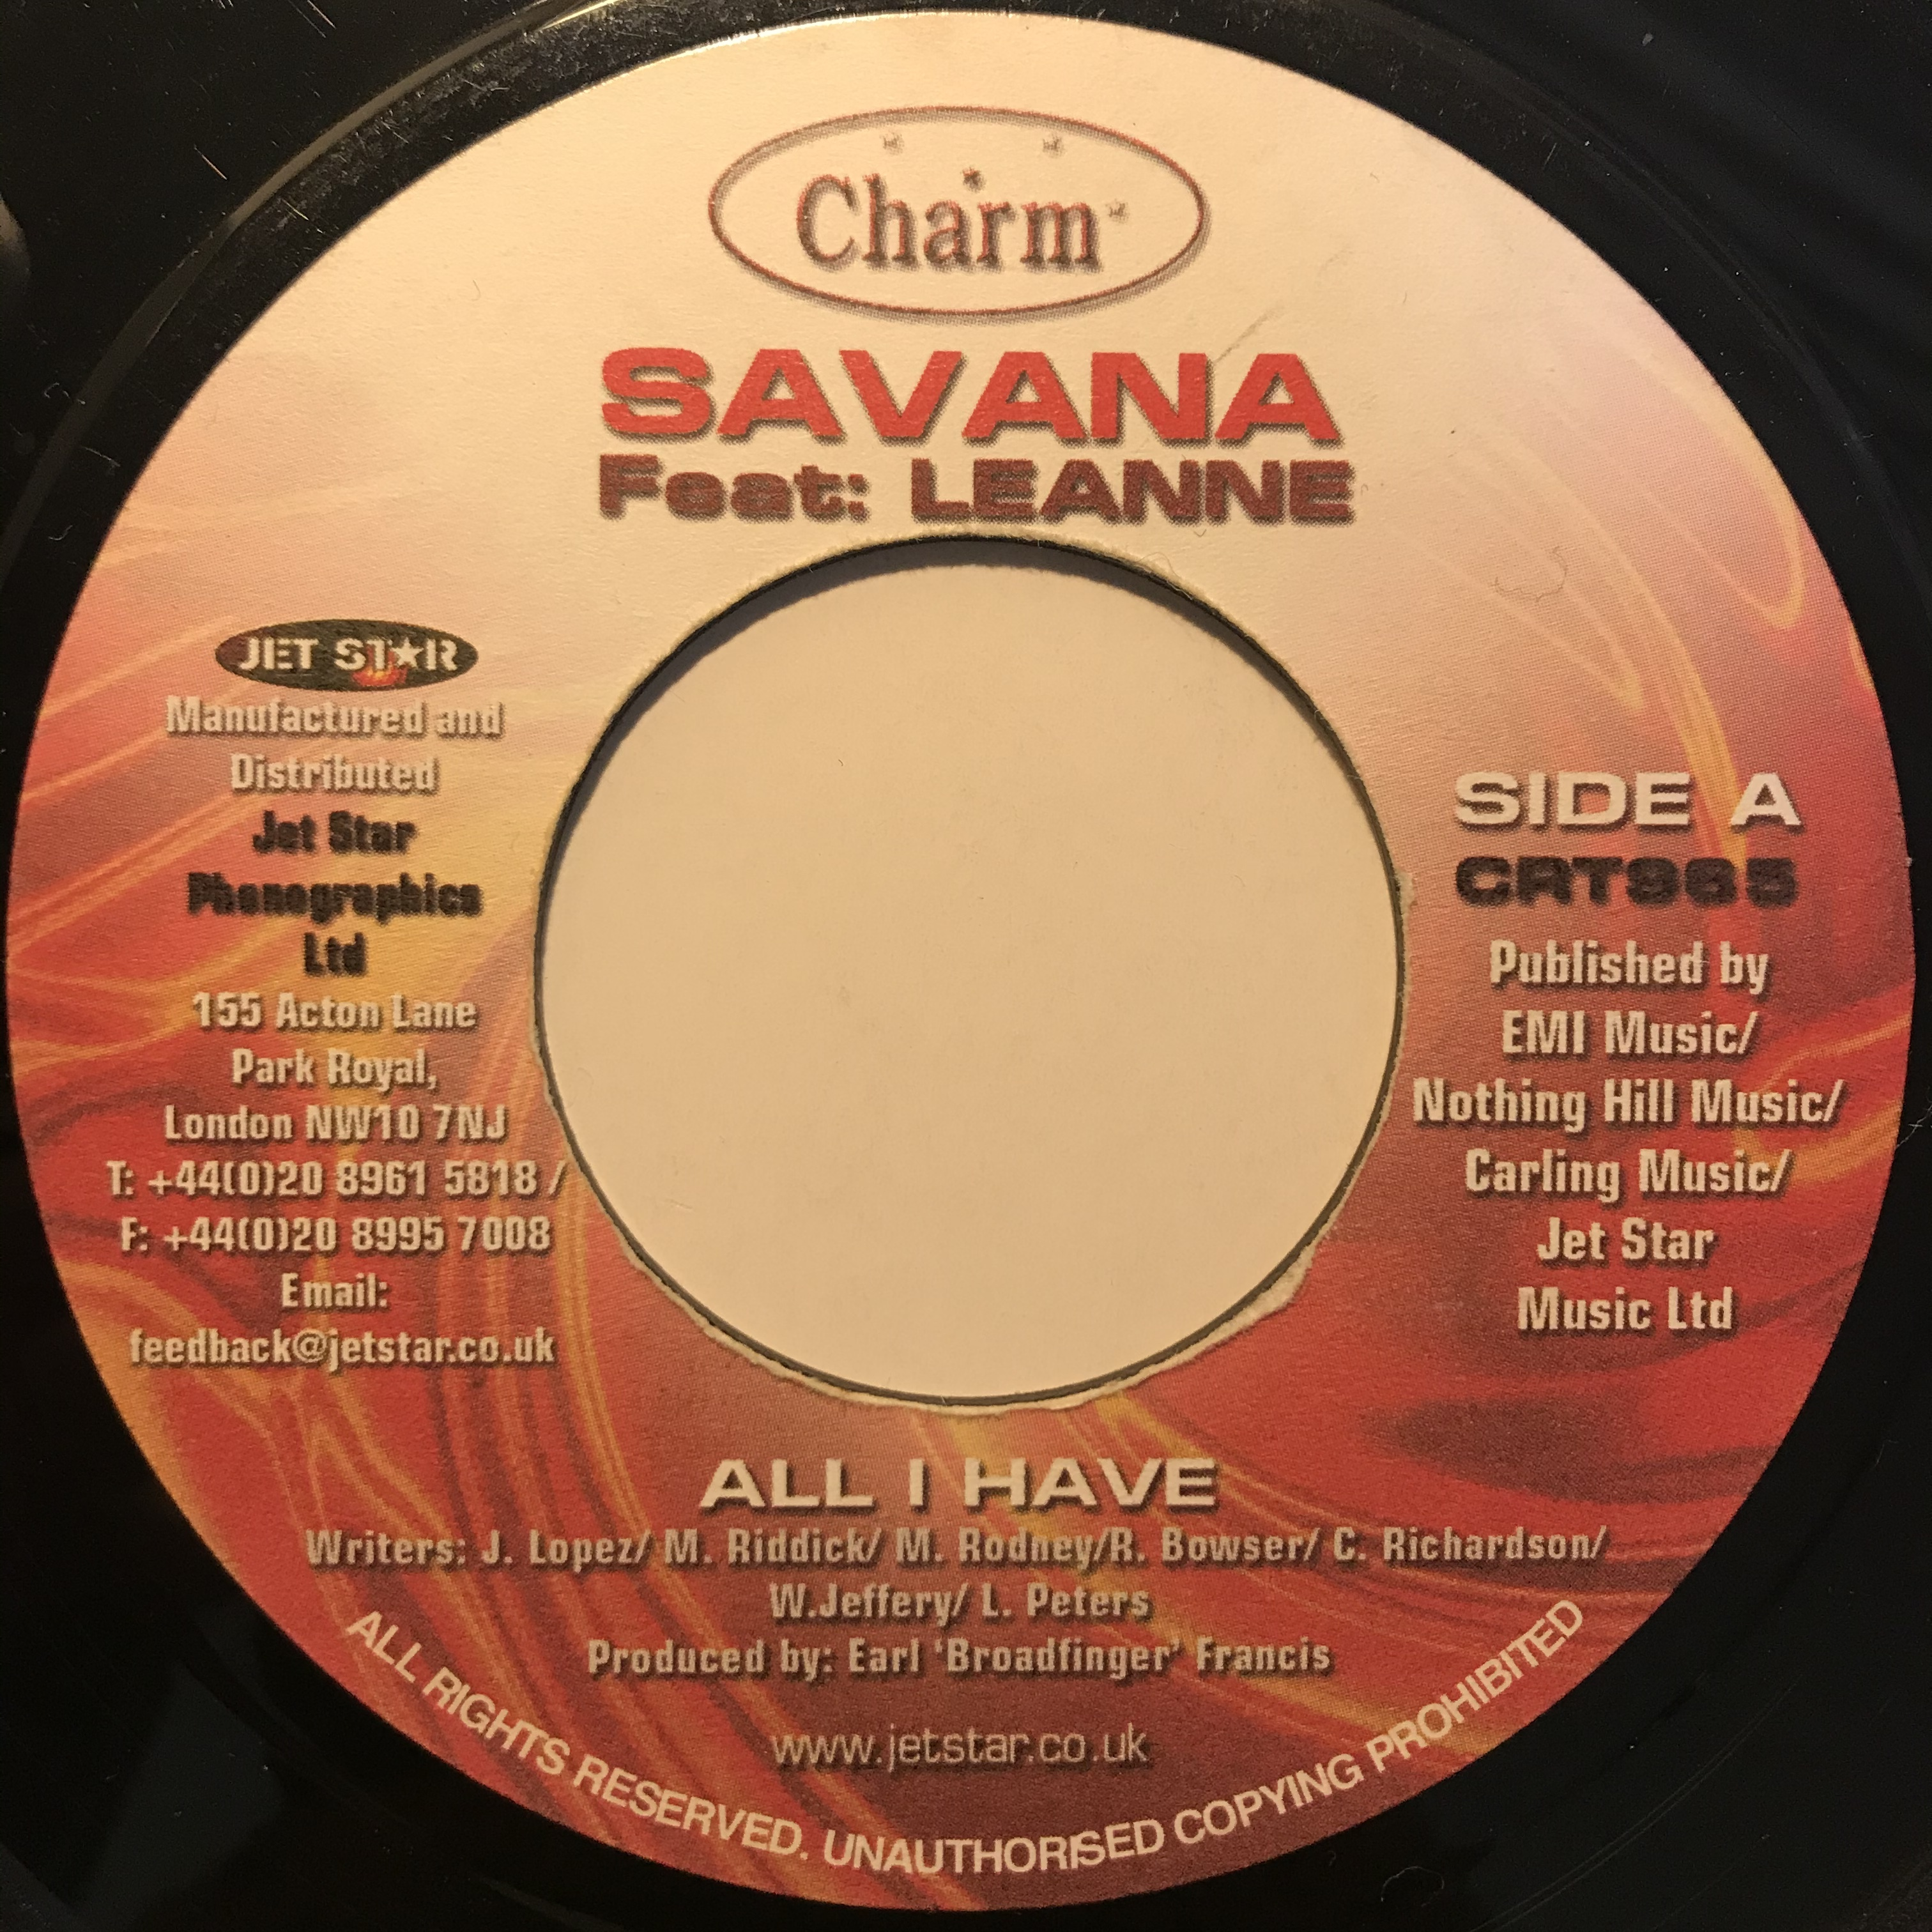 Savana feat. Leanne - All I Have【7-10821】